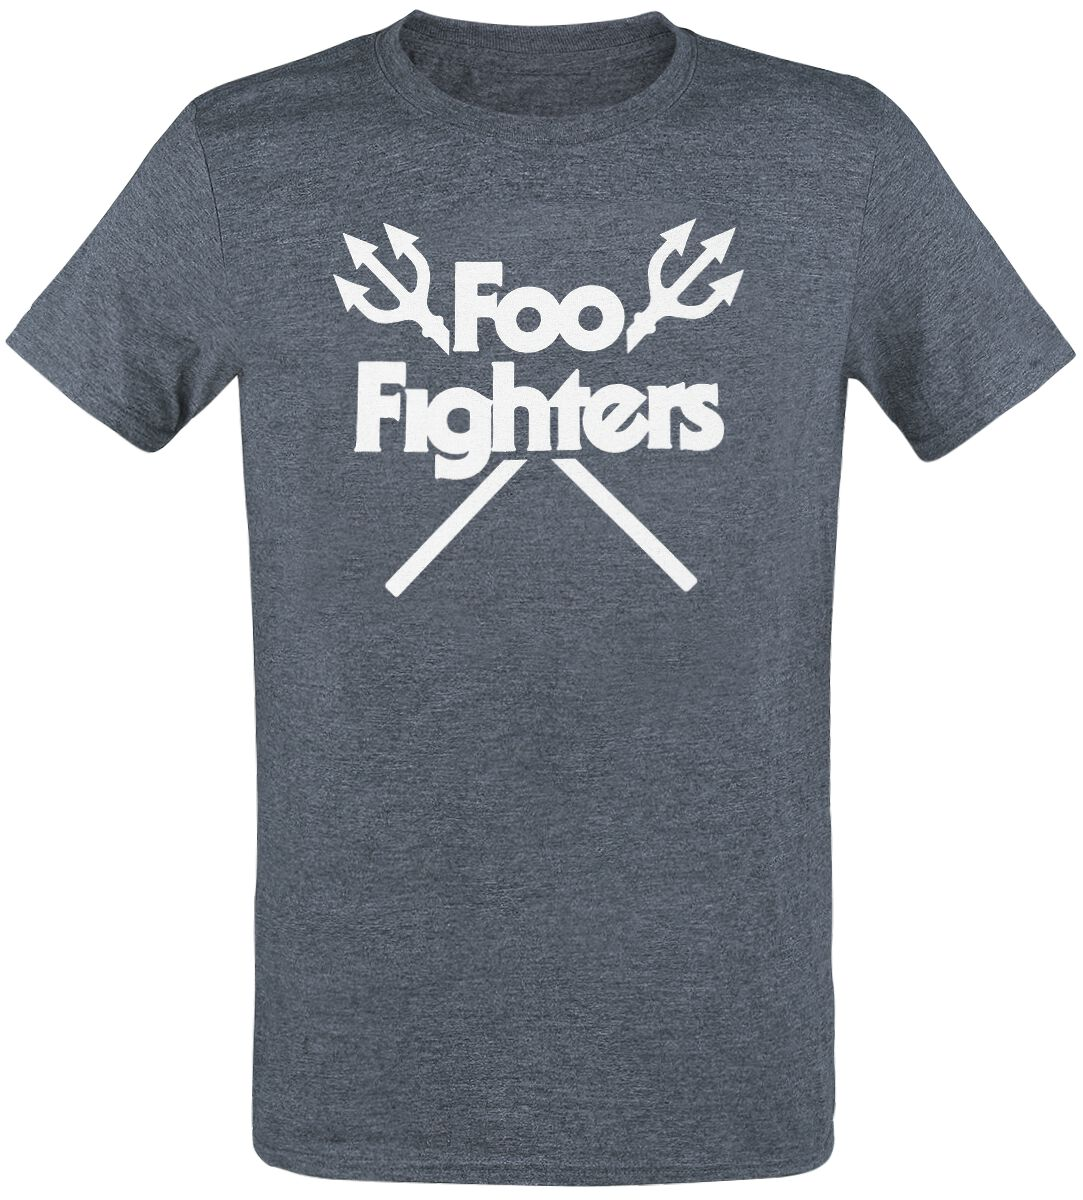 Image of   Foo Fighters Trident T-Shirt grålig